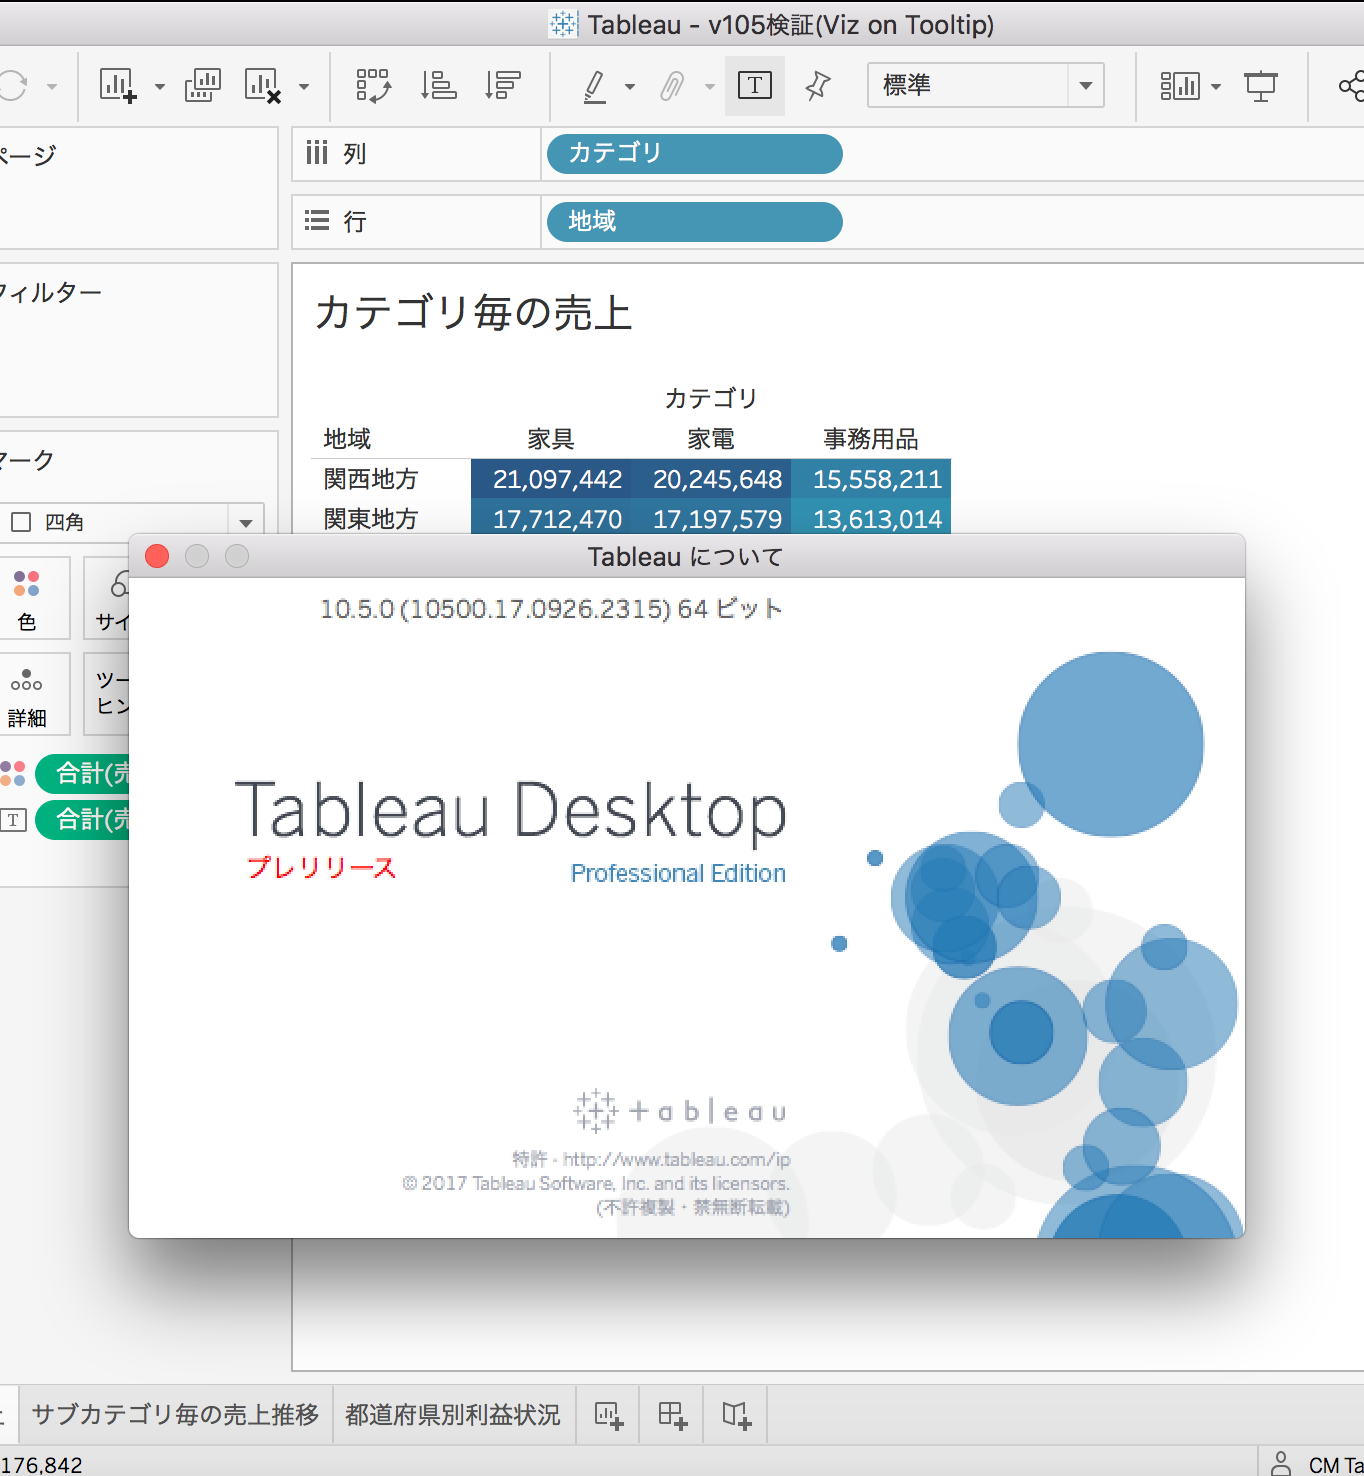 tableau105-new-features-publish-as_01